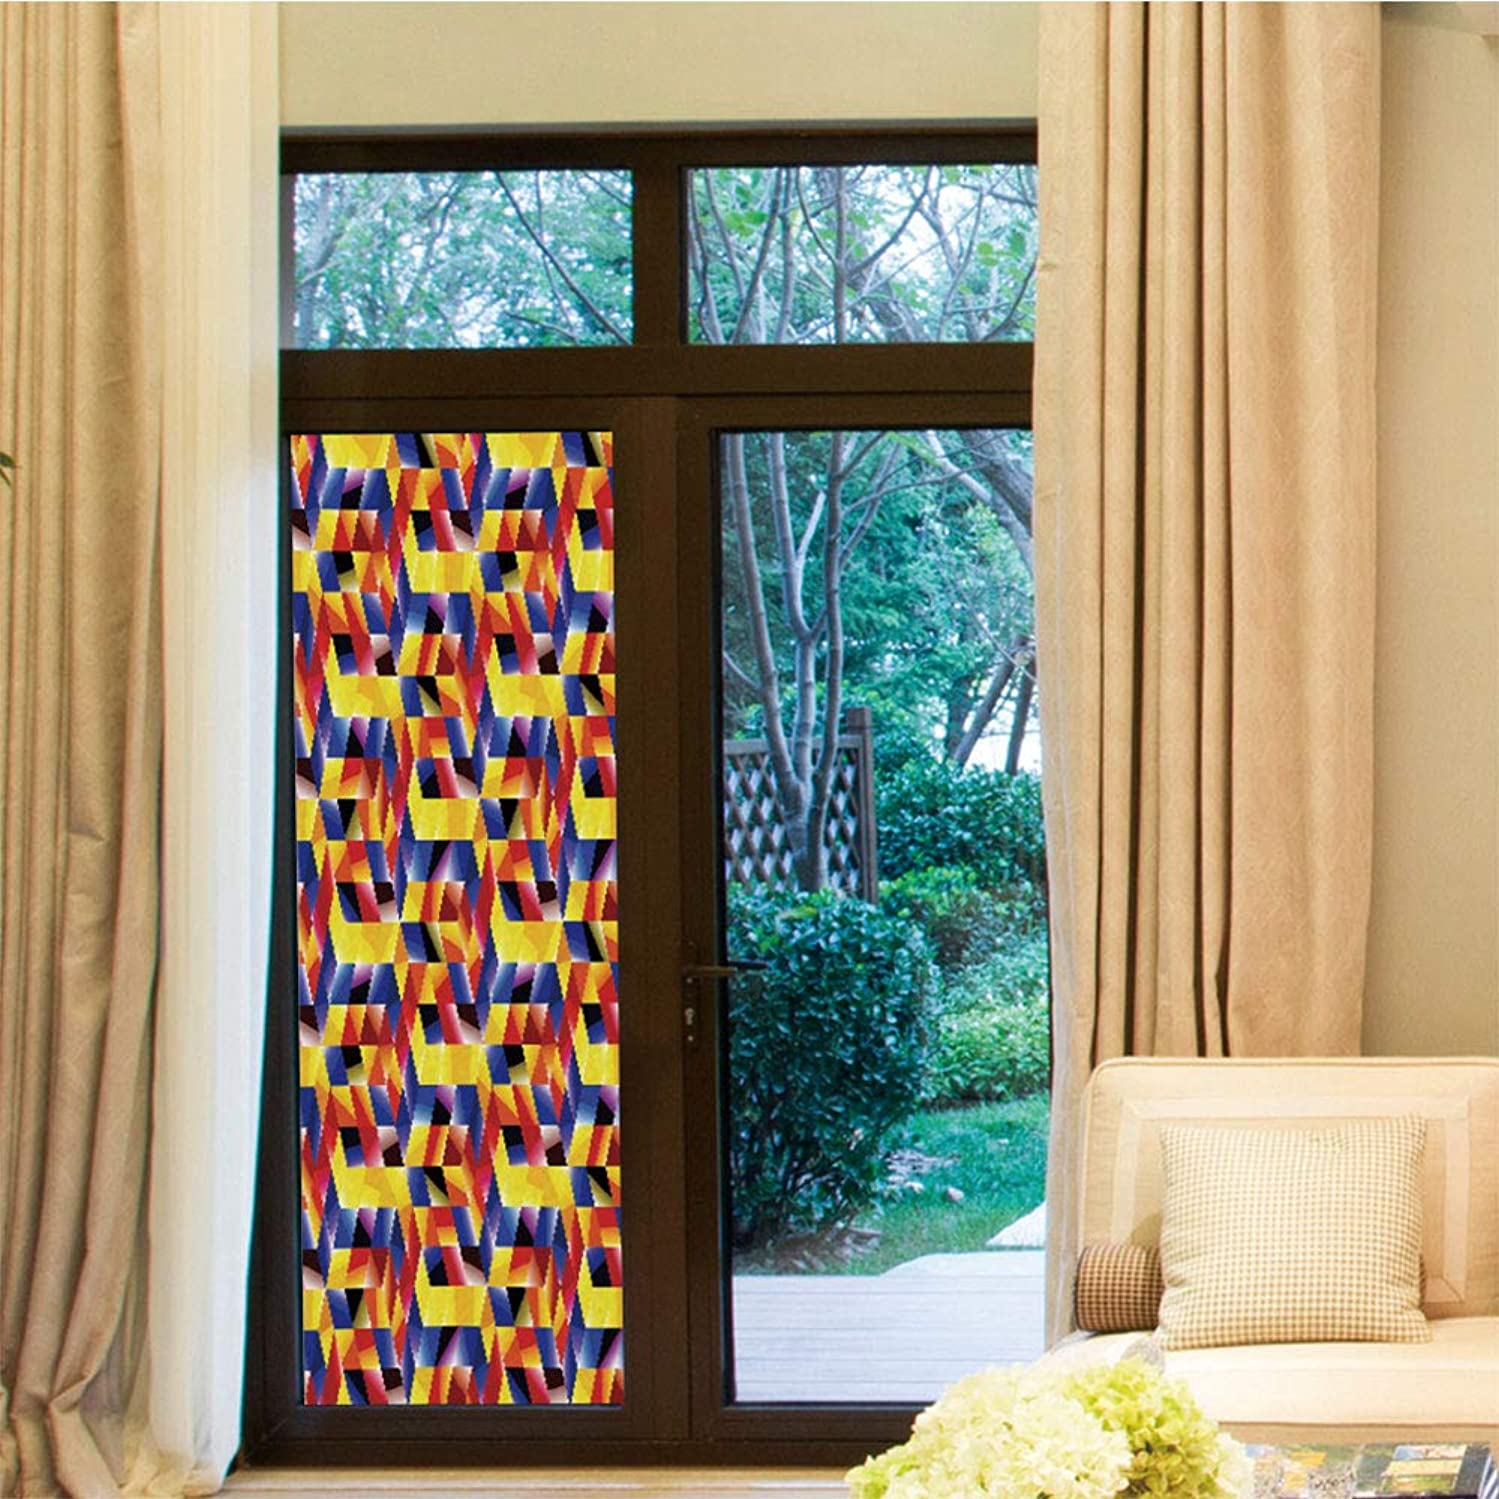 YOLIYANA Environmental Protection Window Film,Geometric,for Home Office School,Vibrant Complex Abstract Forms Contrast Modern Design Digital,24''x70''